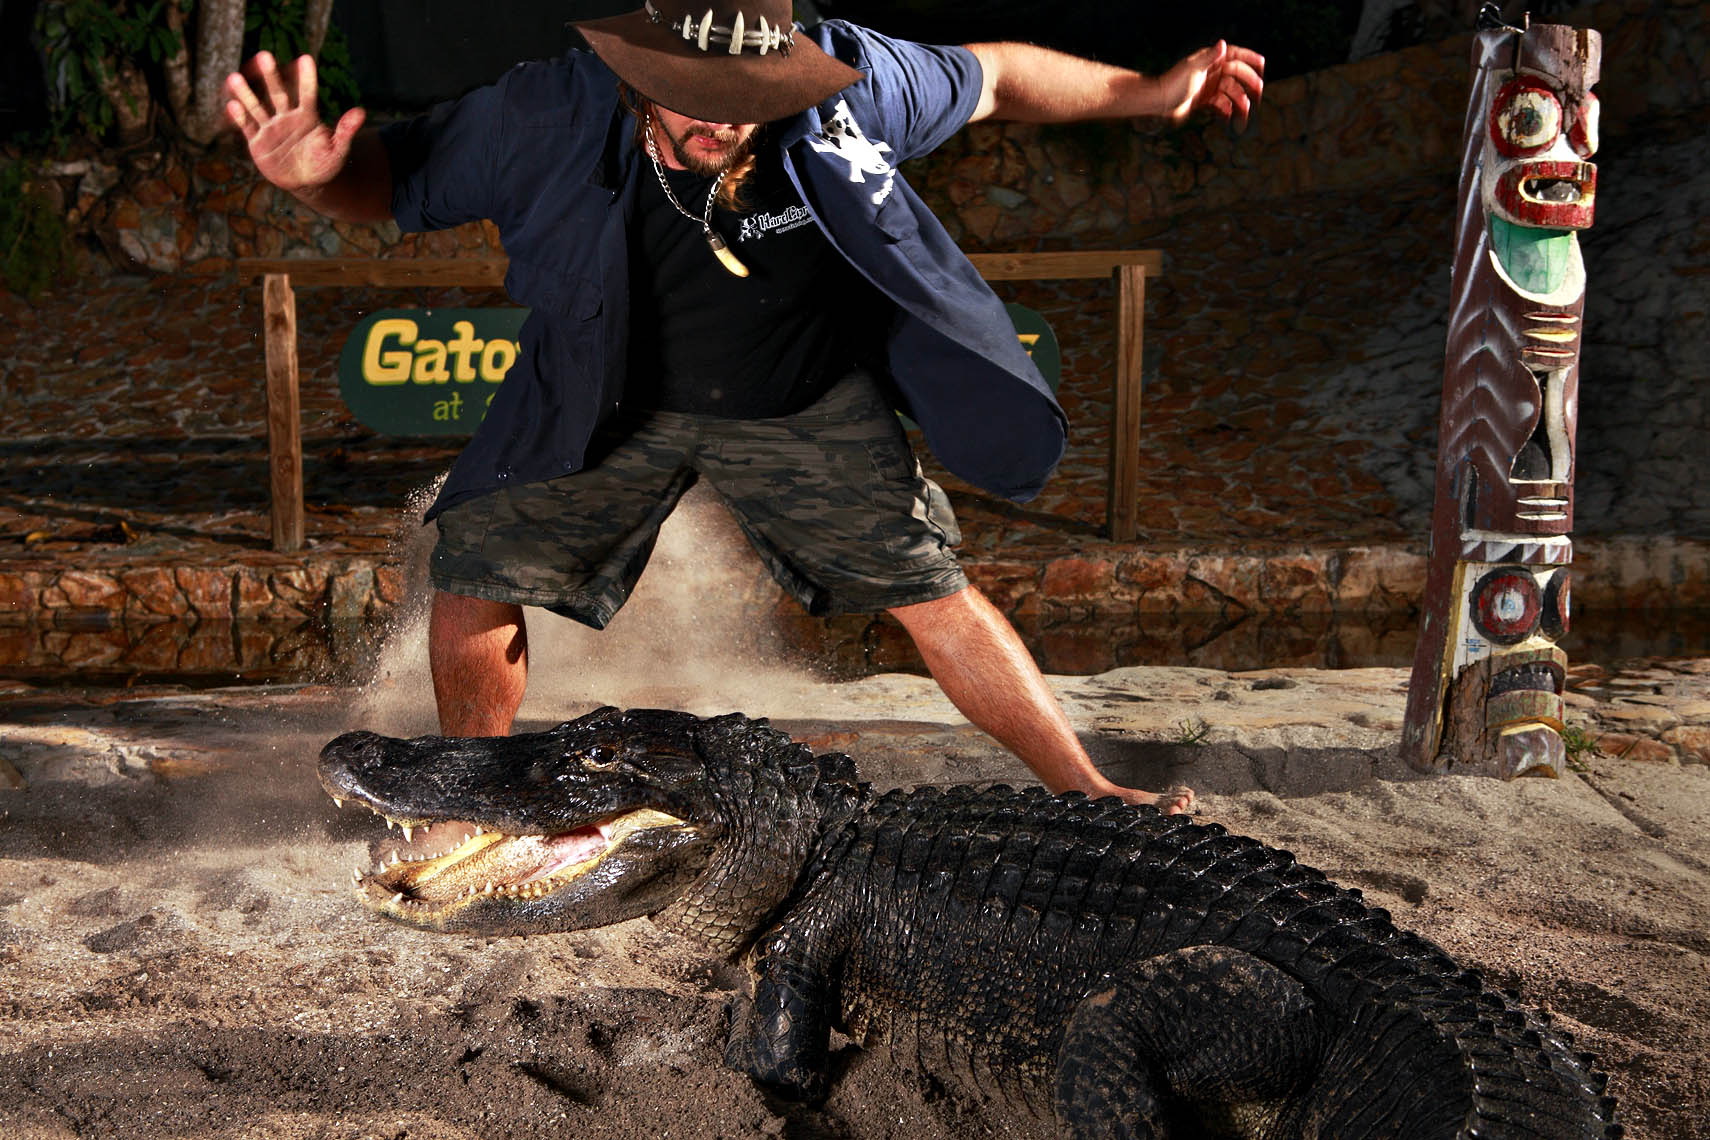 Miami photographer Bob Croslin photographs Gator Boys Jimmy Riffle weird Florida